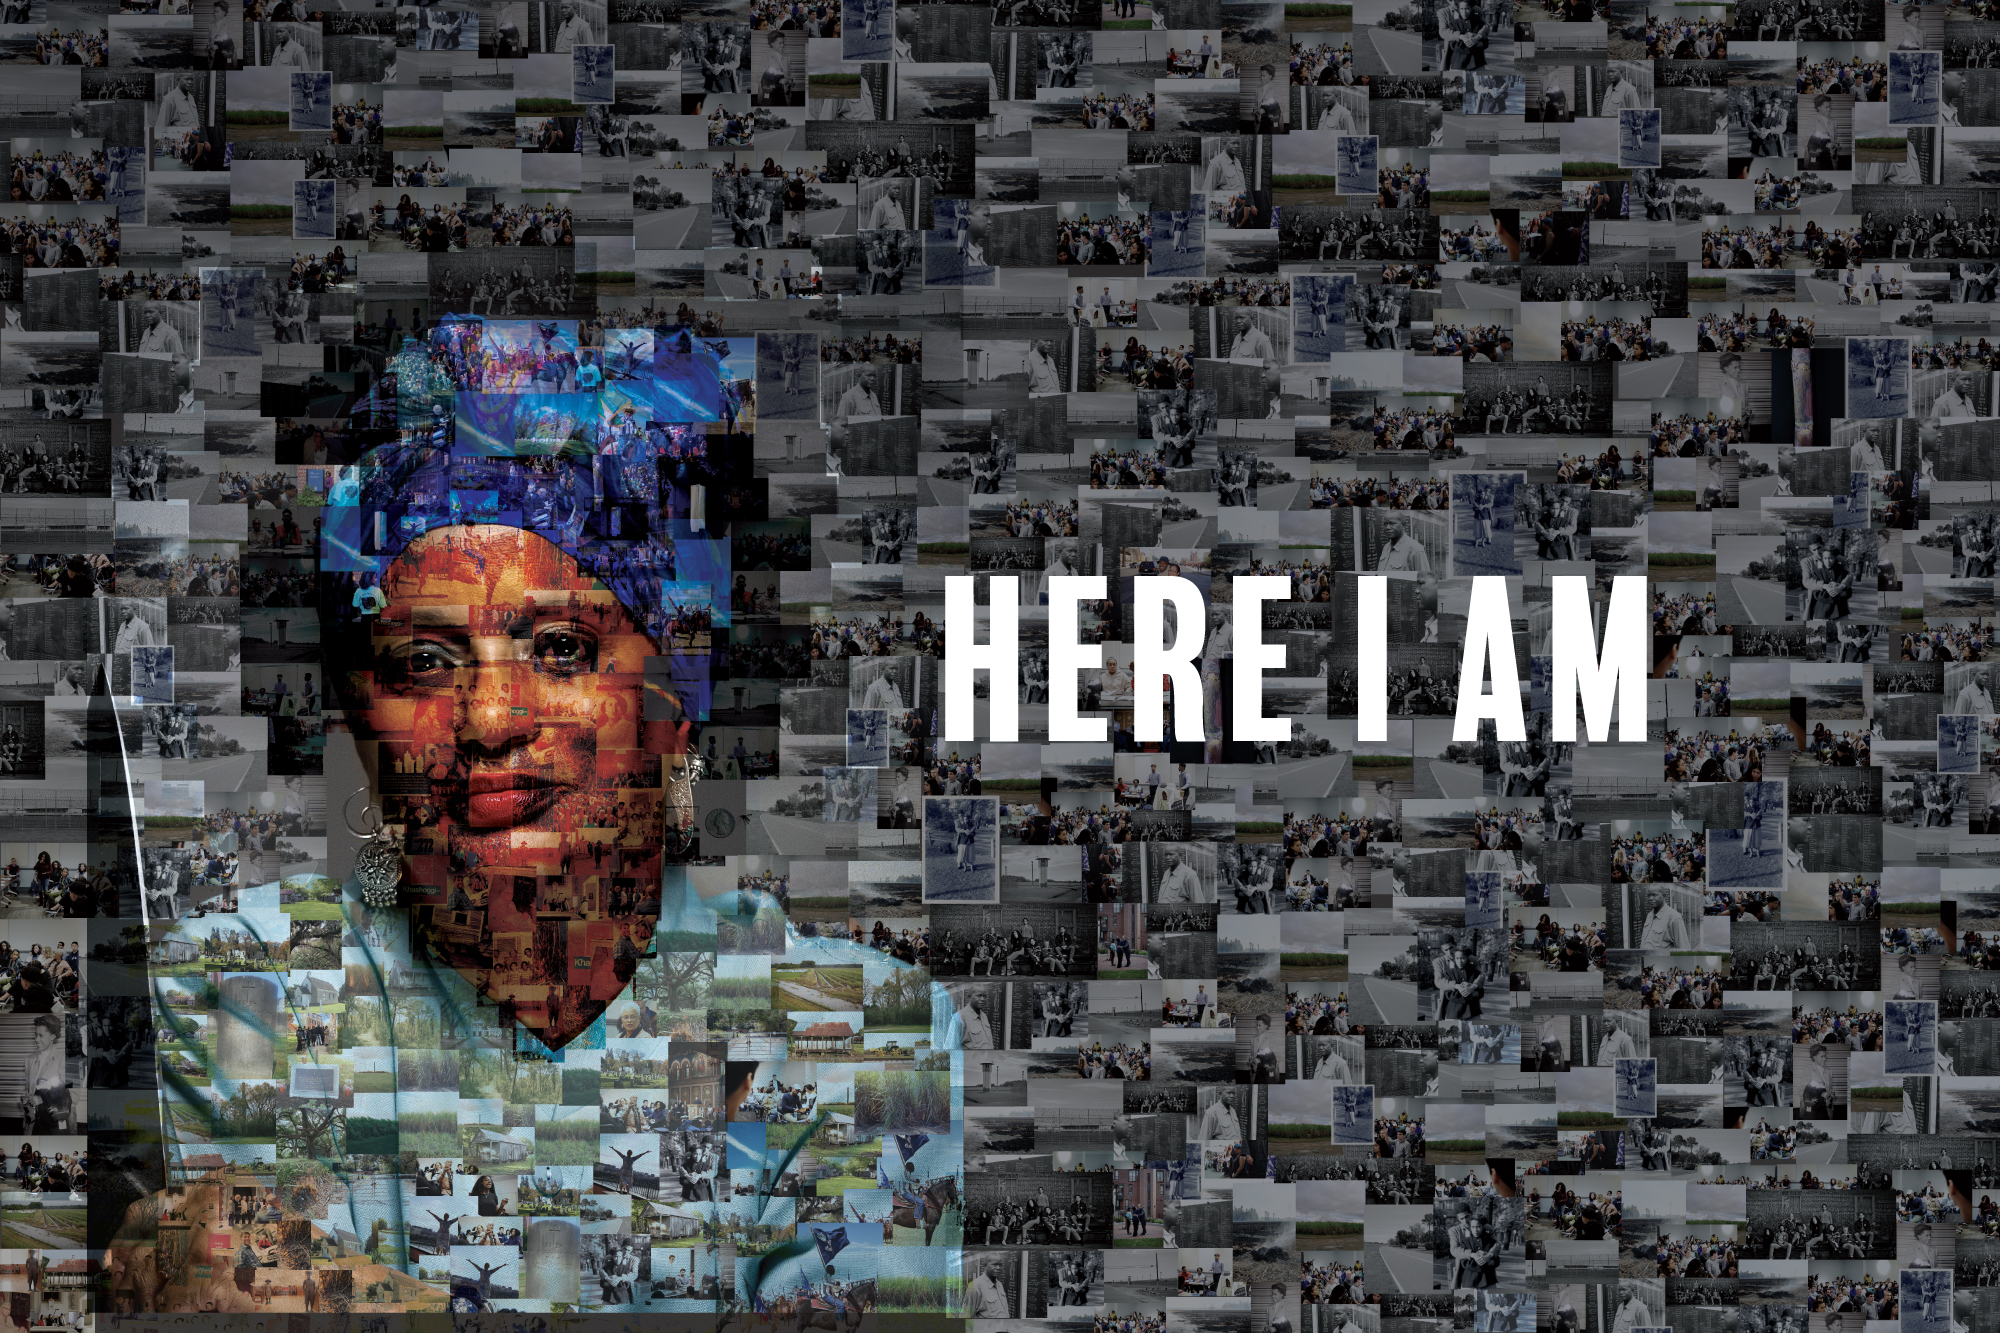 A mosaic photo of Melisande Short Colombe, comprised of hundreds of smaller personal and historical photos from her life